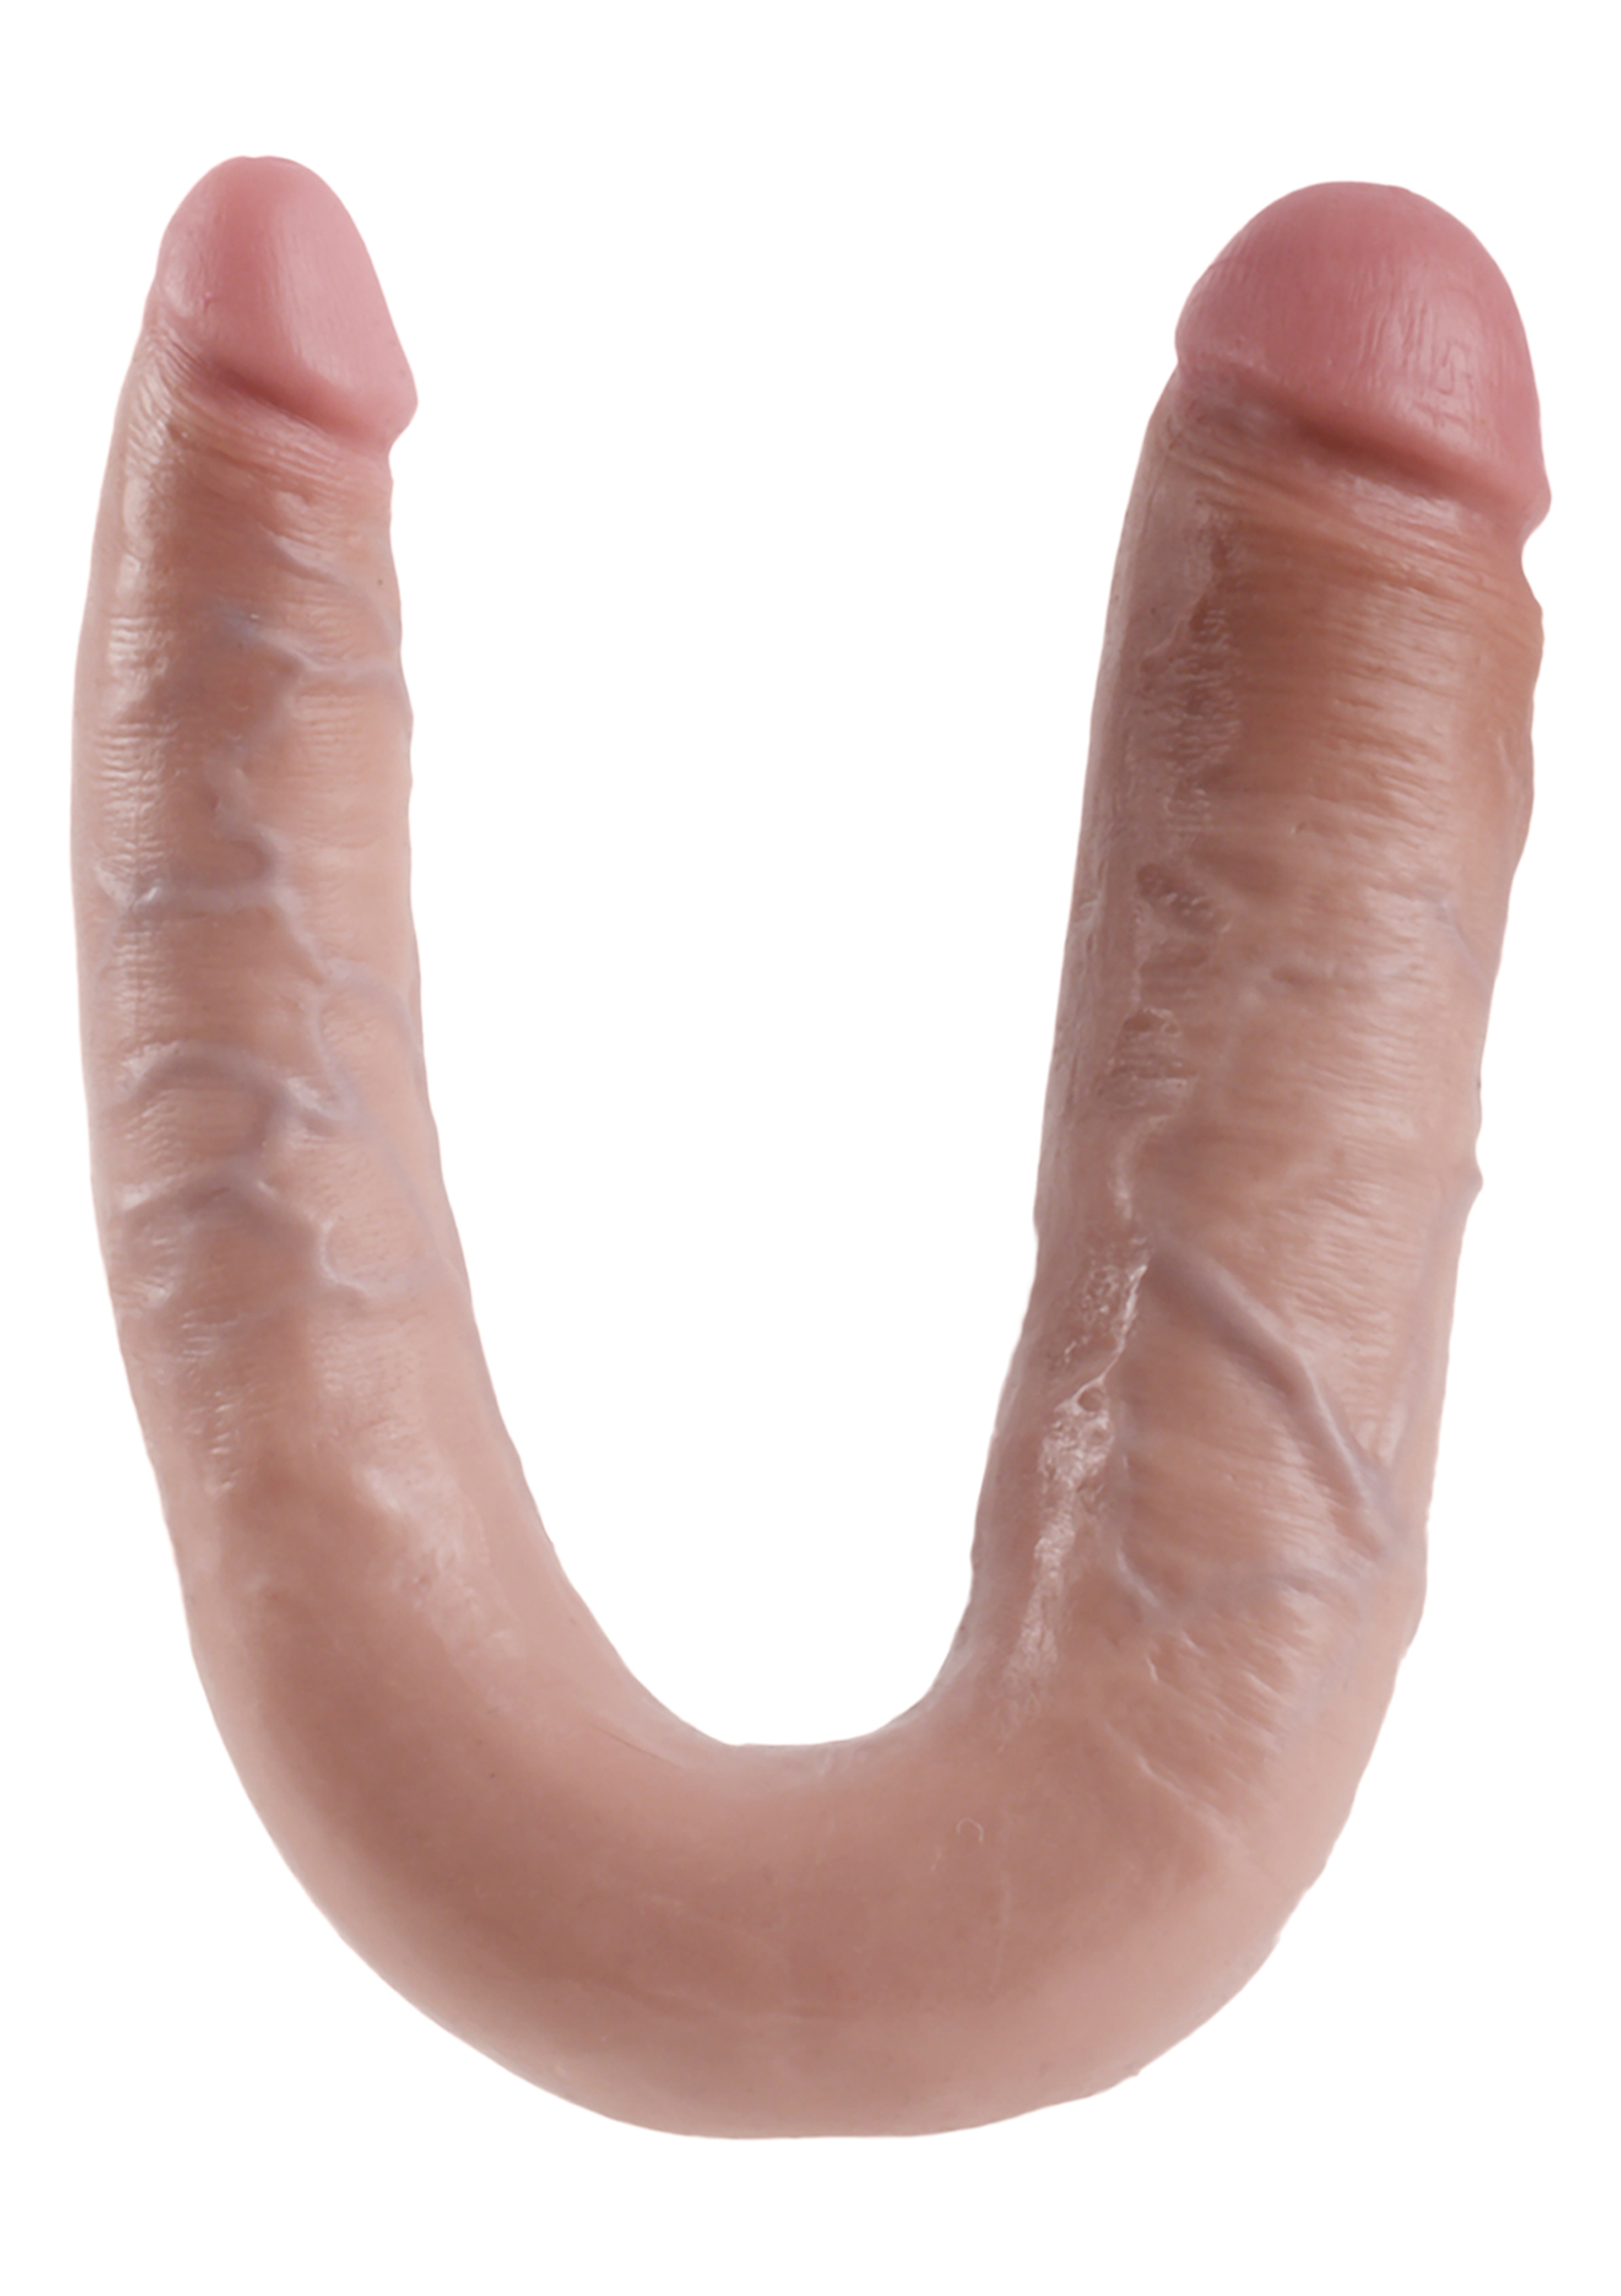 KING COCK LARGE DOUBLE TROUBLE 7 INCH